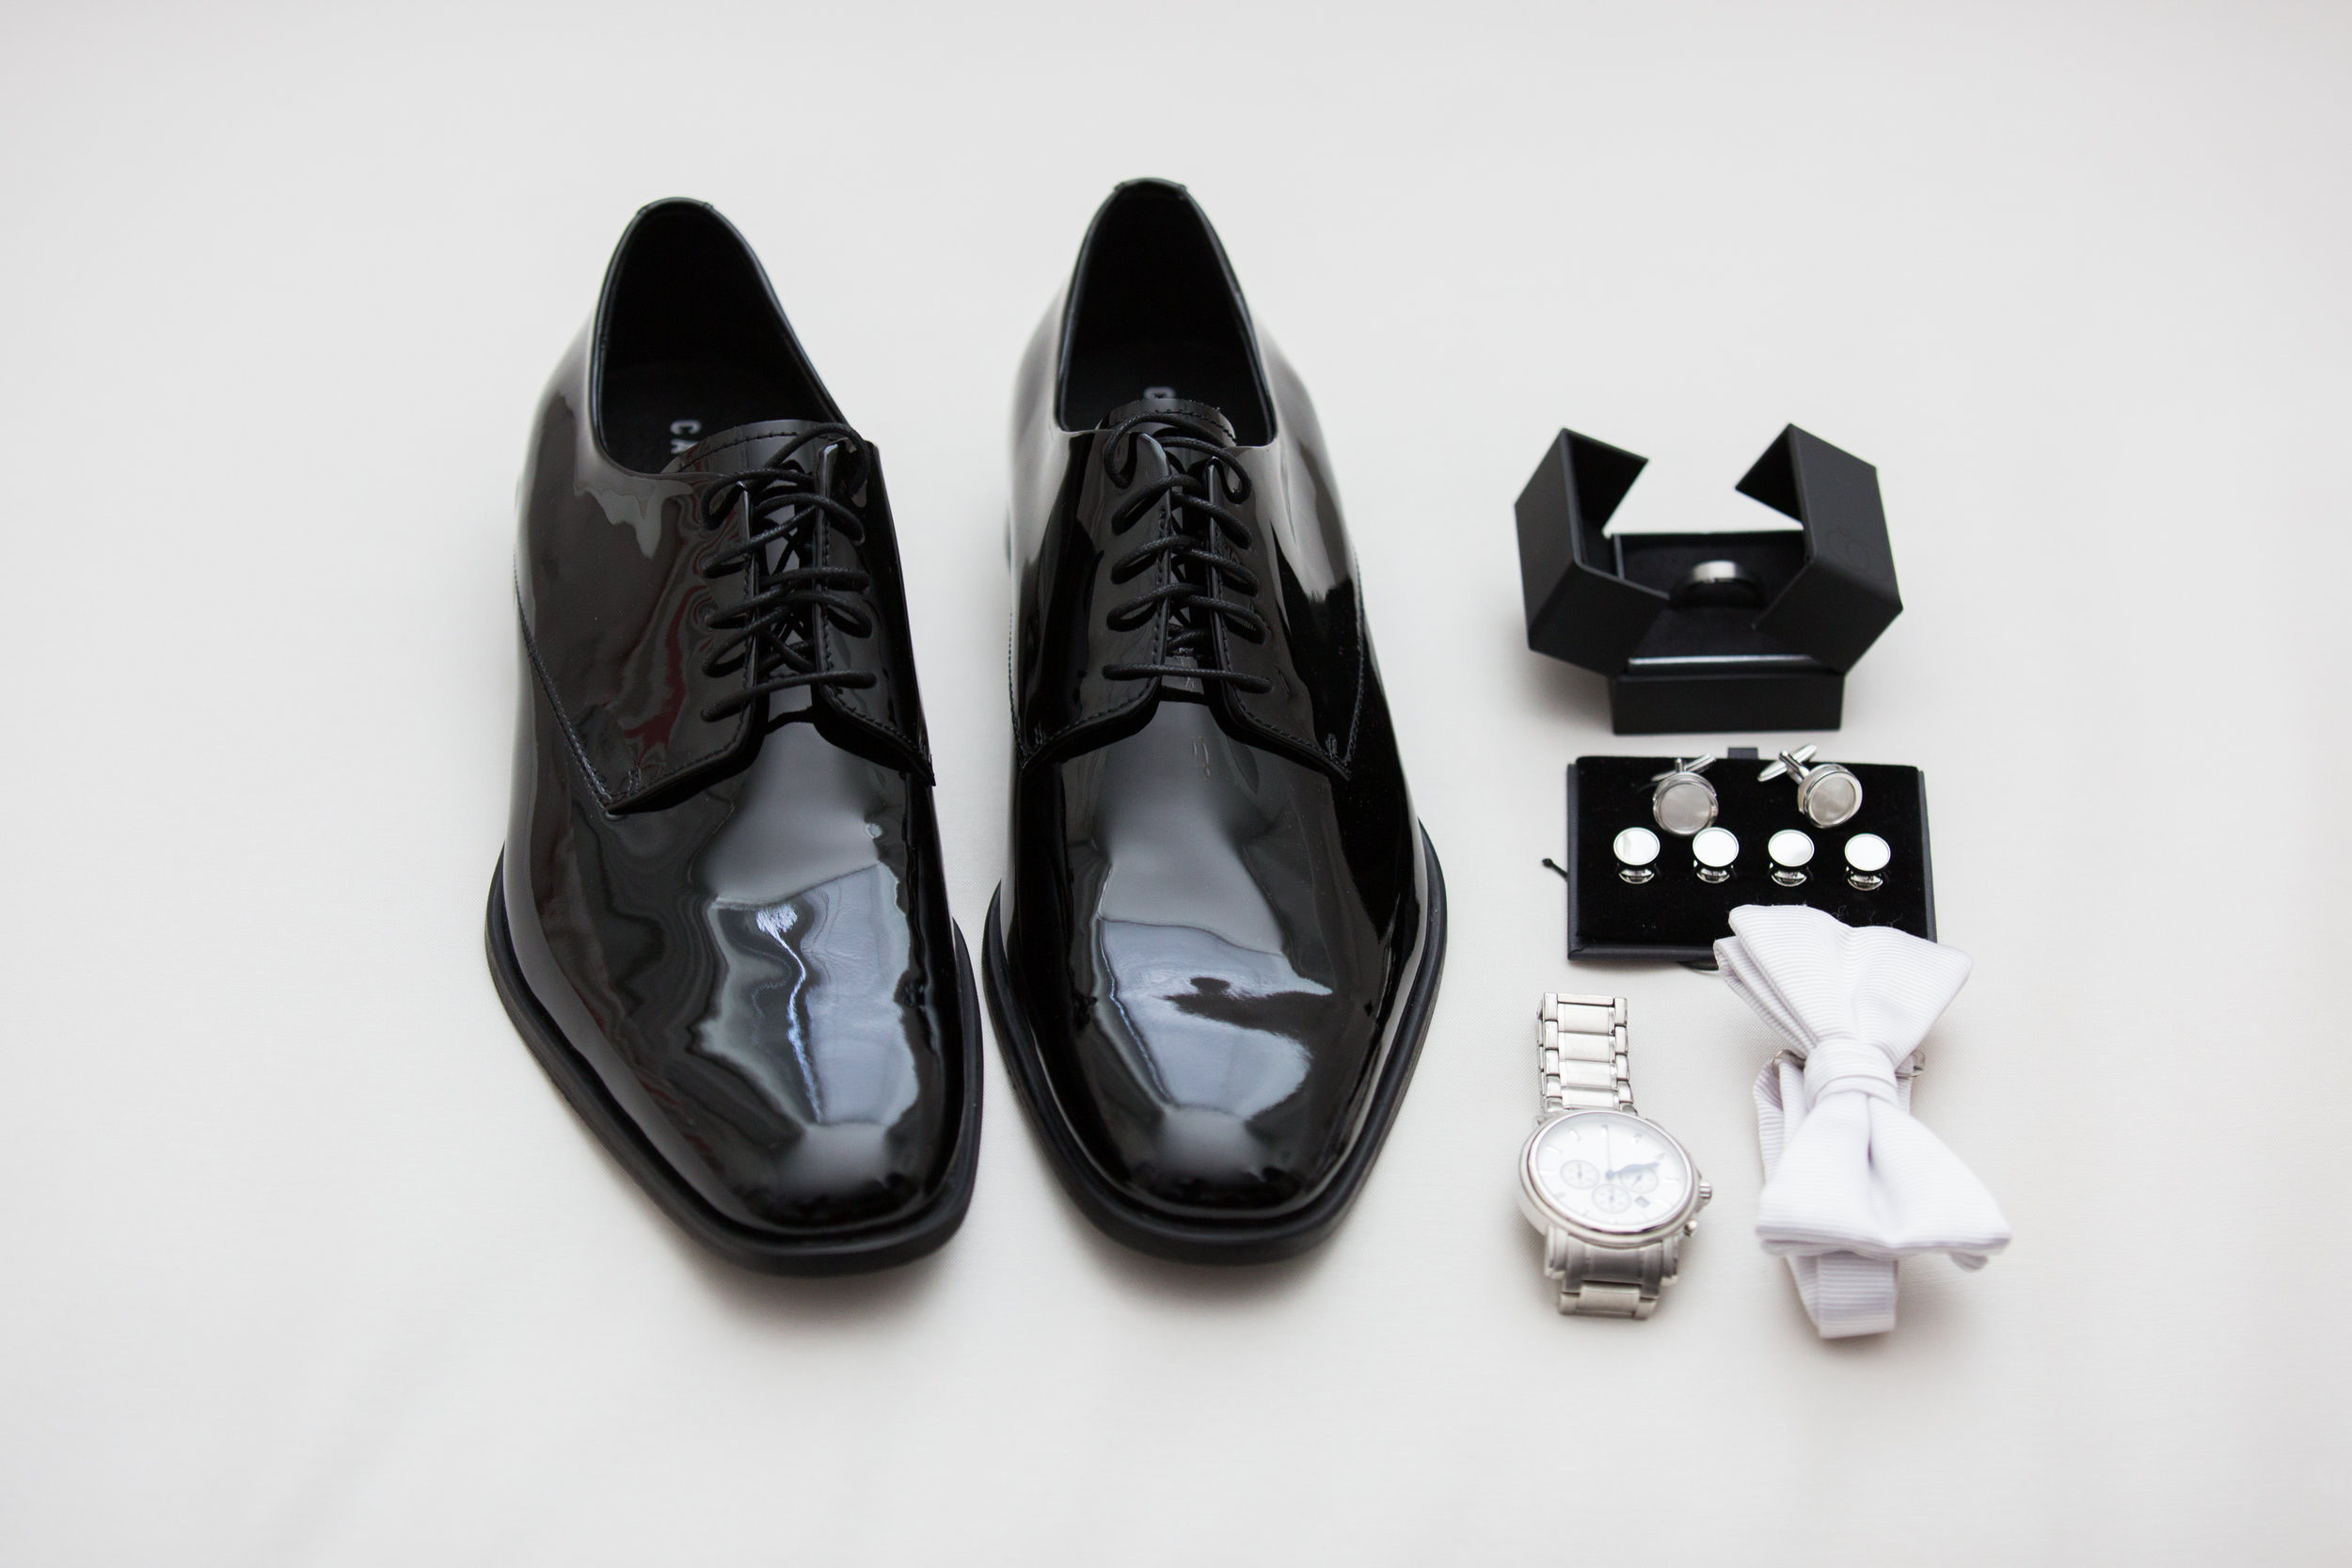 Luxury Destination Wedding Planning and Event Design by  Andrea Eppolito Events  · Photos by  Stephen Salazar  · Groom's Accessories.  Black high shine shoes.  Bow tie.  Watch